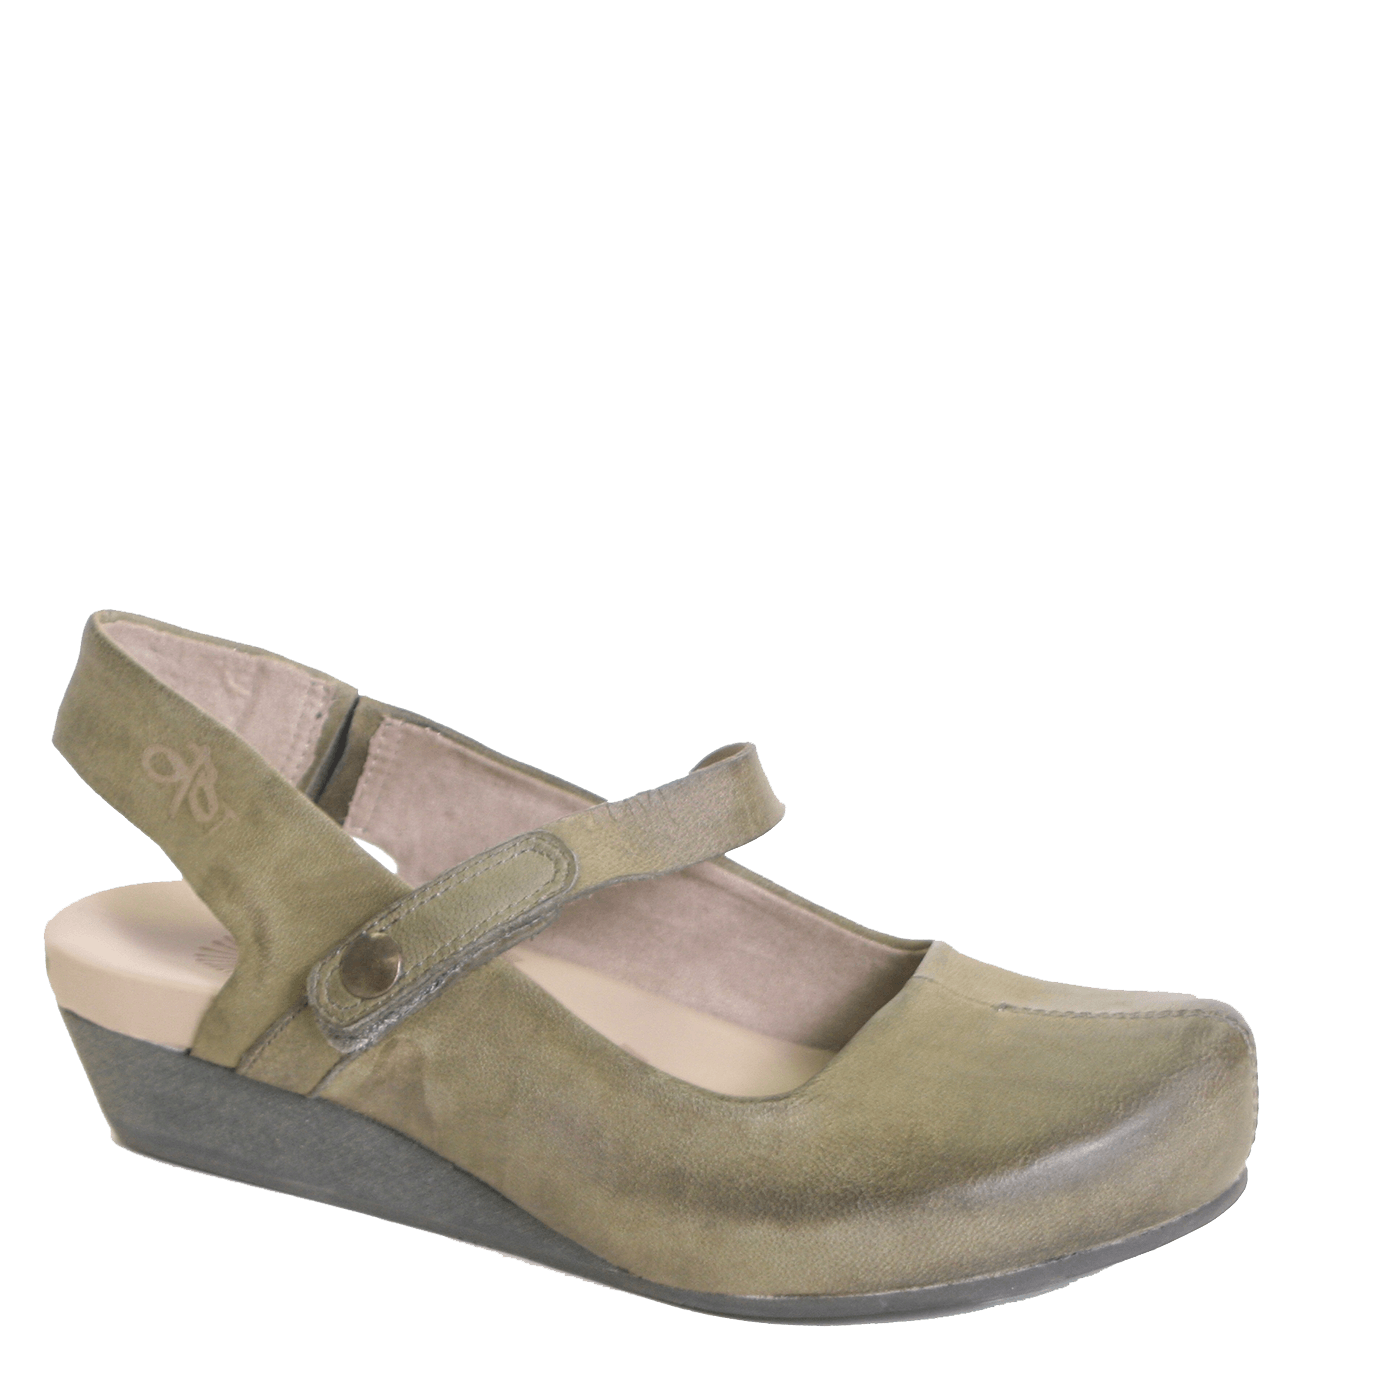 SPRINGFIELD in NEW MINT Closed Toe Wedges